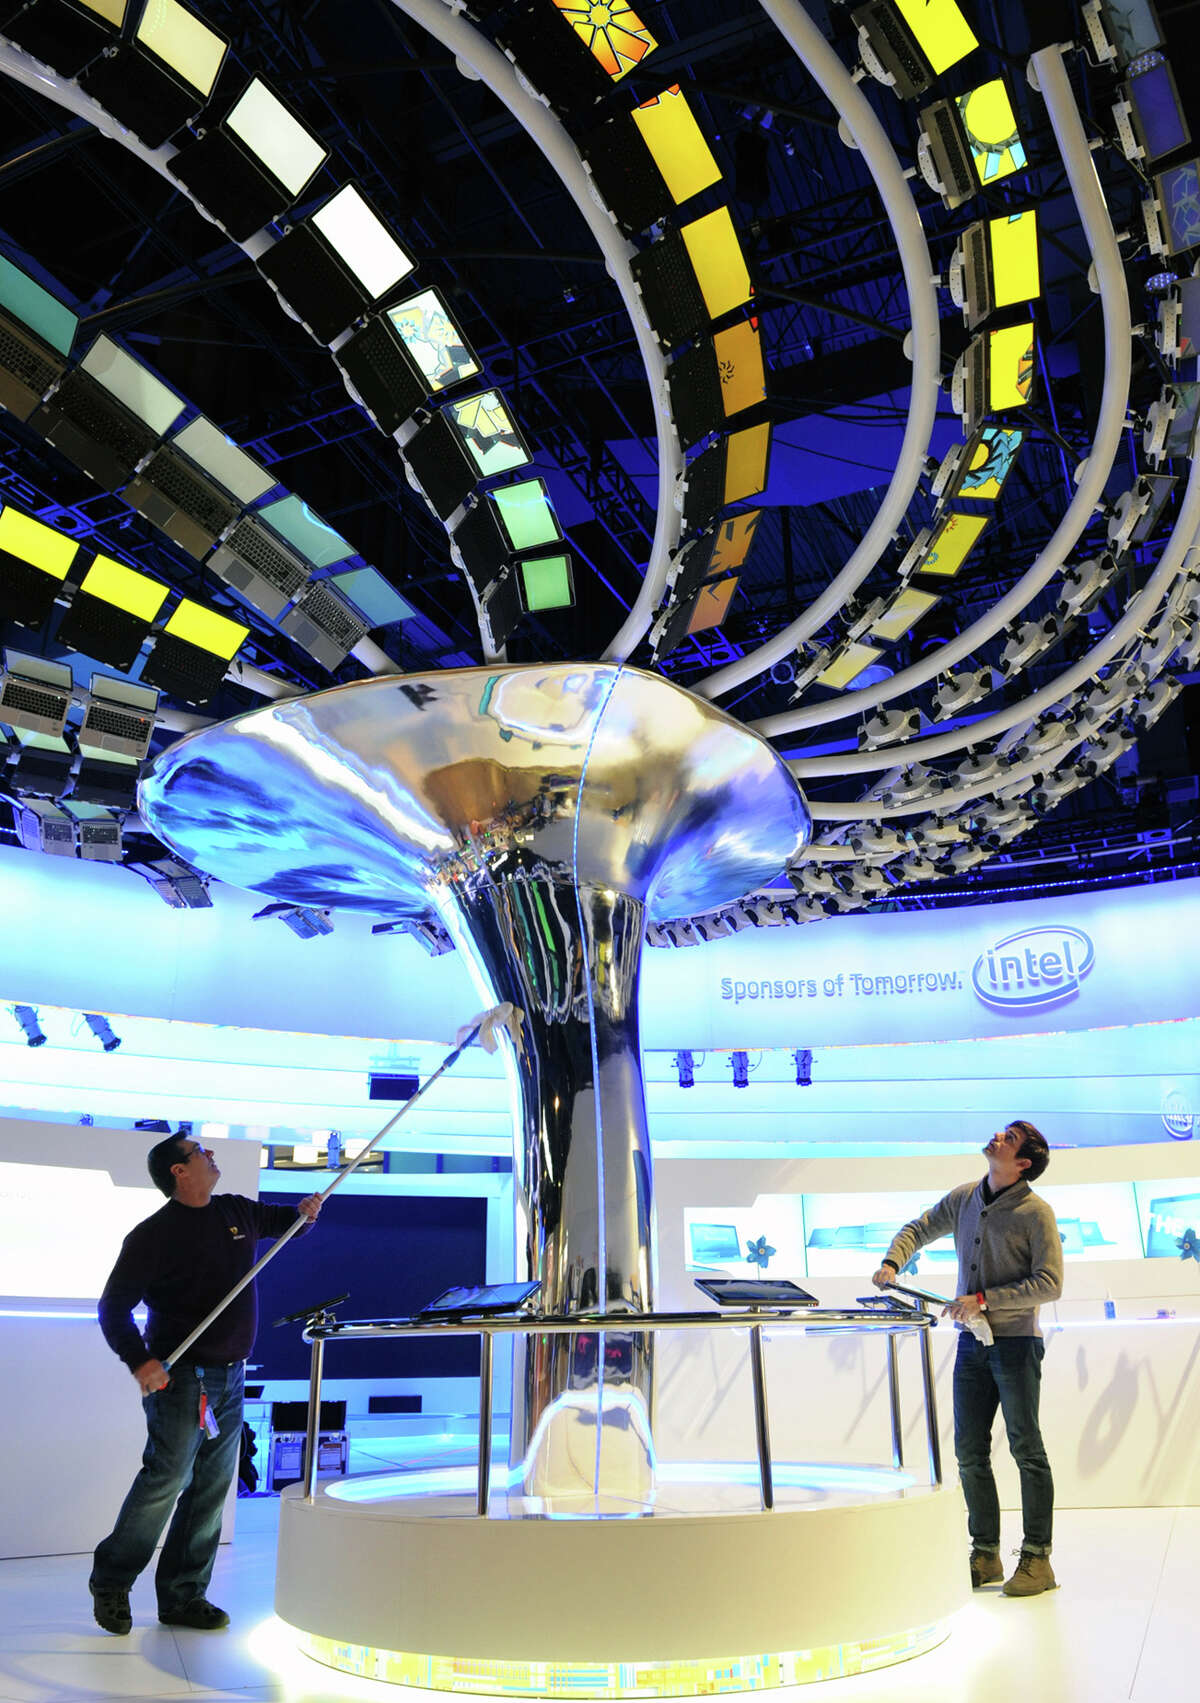 Workers position 176 Ultrabook devices on a massive tree within Intel's cornerstone booth for the upcoming International Consumer Electronics Show of Saturday, Jan. 5, 2013, inside the Convention Center in Las Vegas.